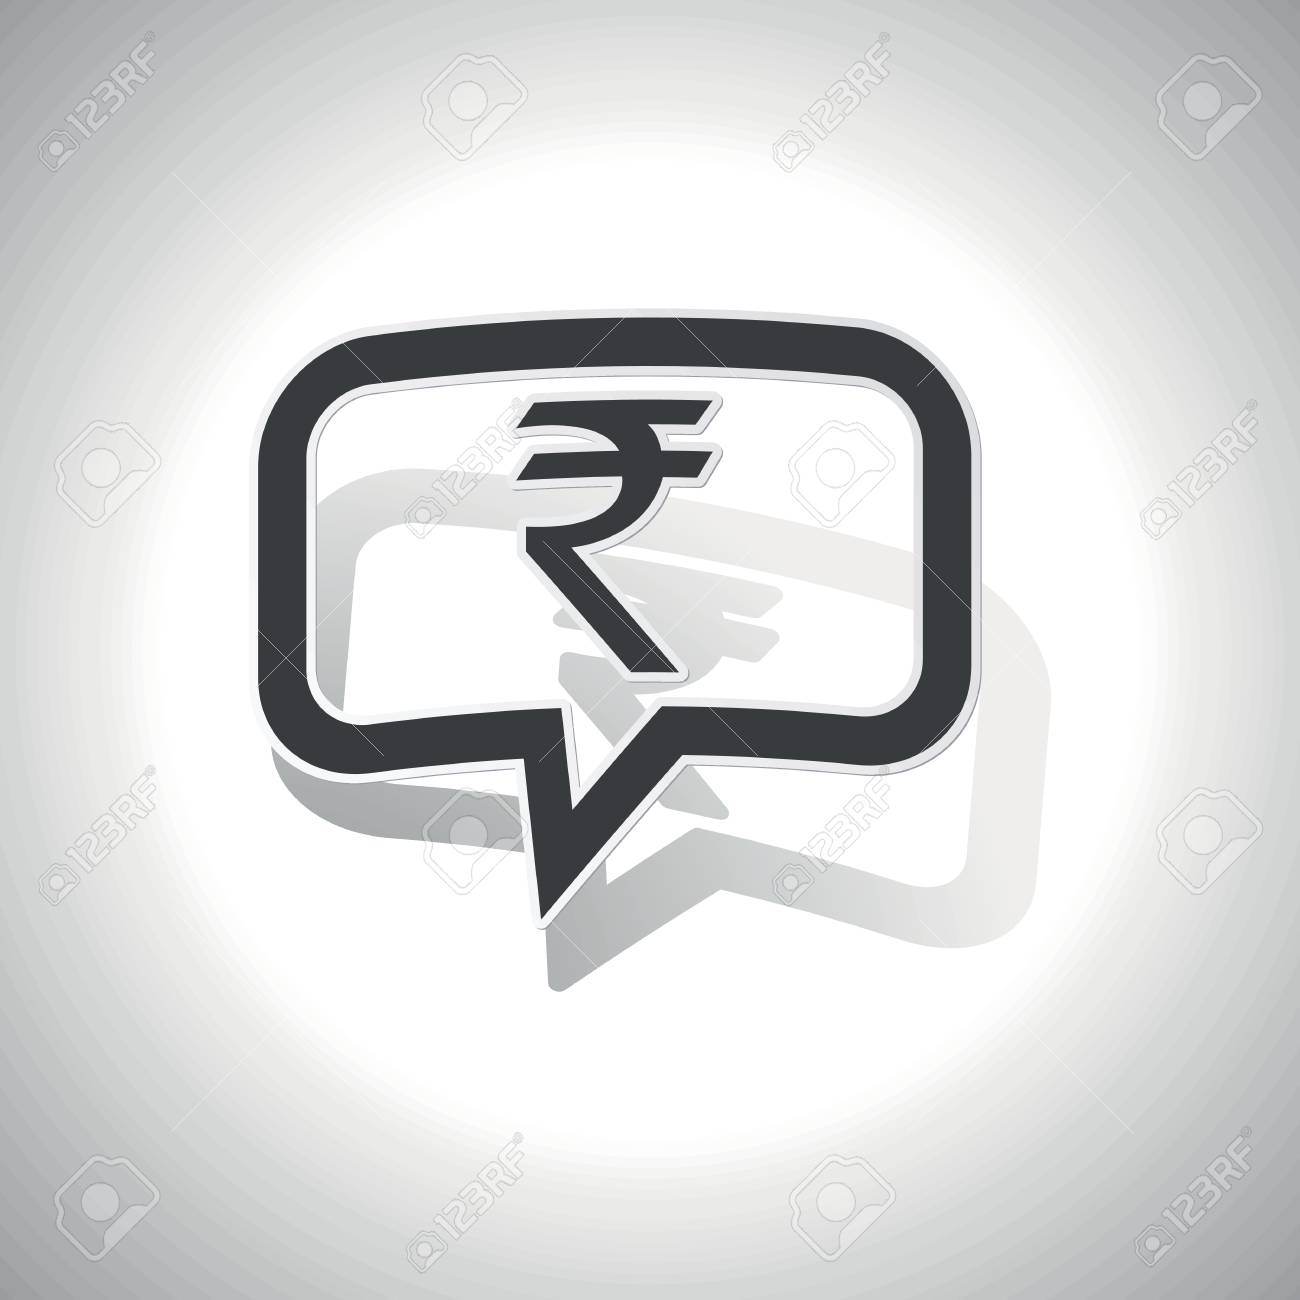 Curved chat bubble with indian rupee symbol and shadow on white curved chat bubble with indian rupee symbol and shadow on white stock vector 43303112 biocorpaavc Choice Image